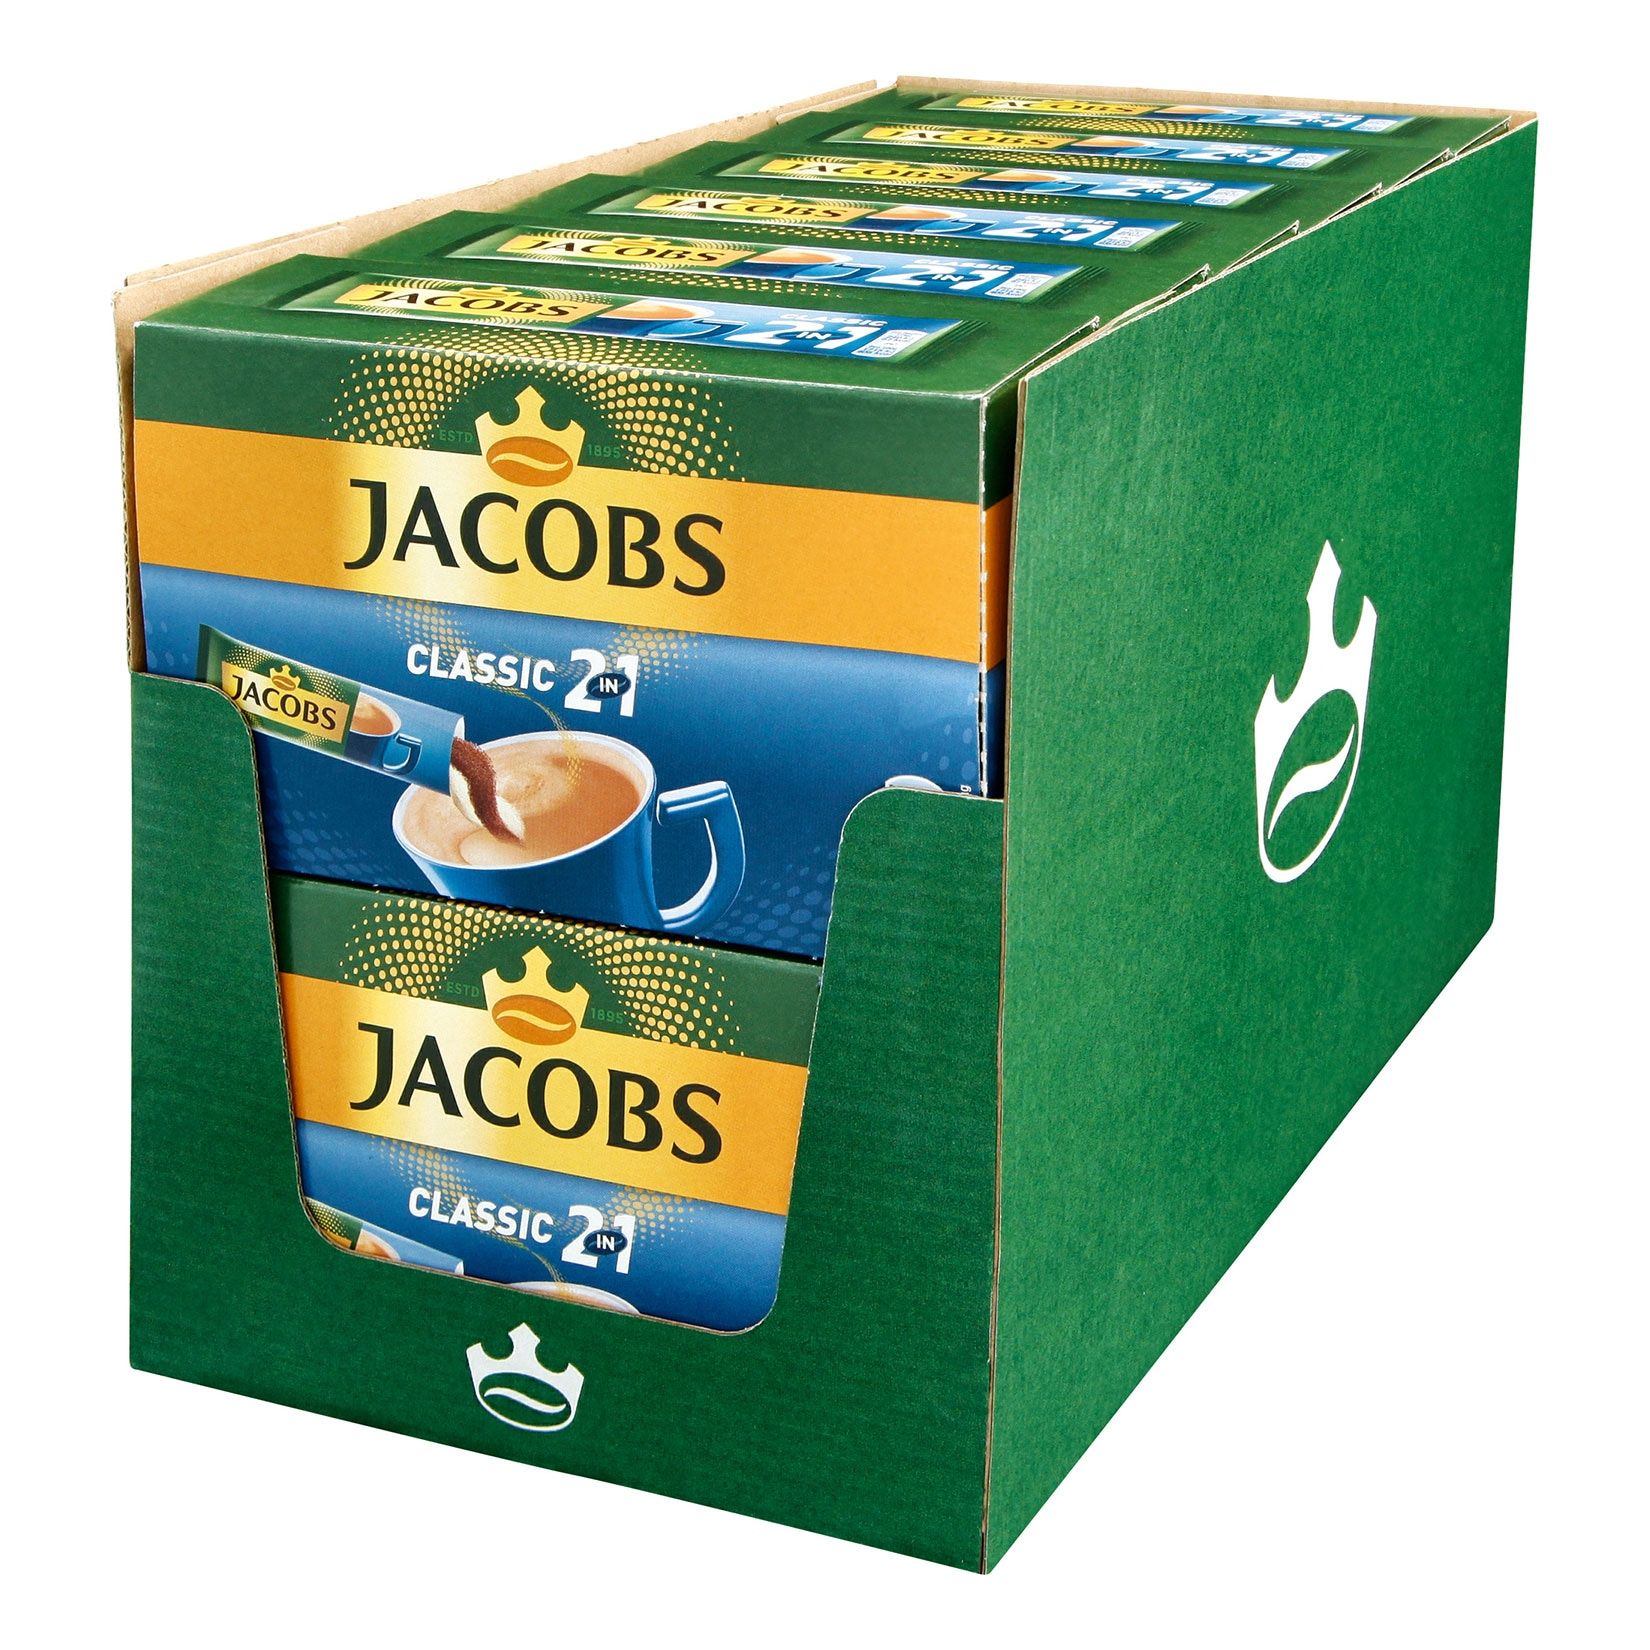 Jacobs Kaffeesticks 2in1 140 g, 12er Pack von Jacobs